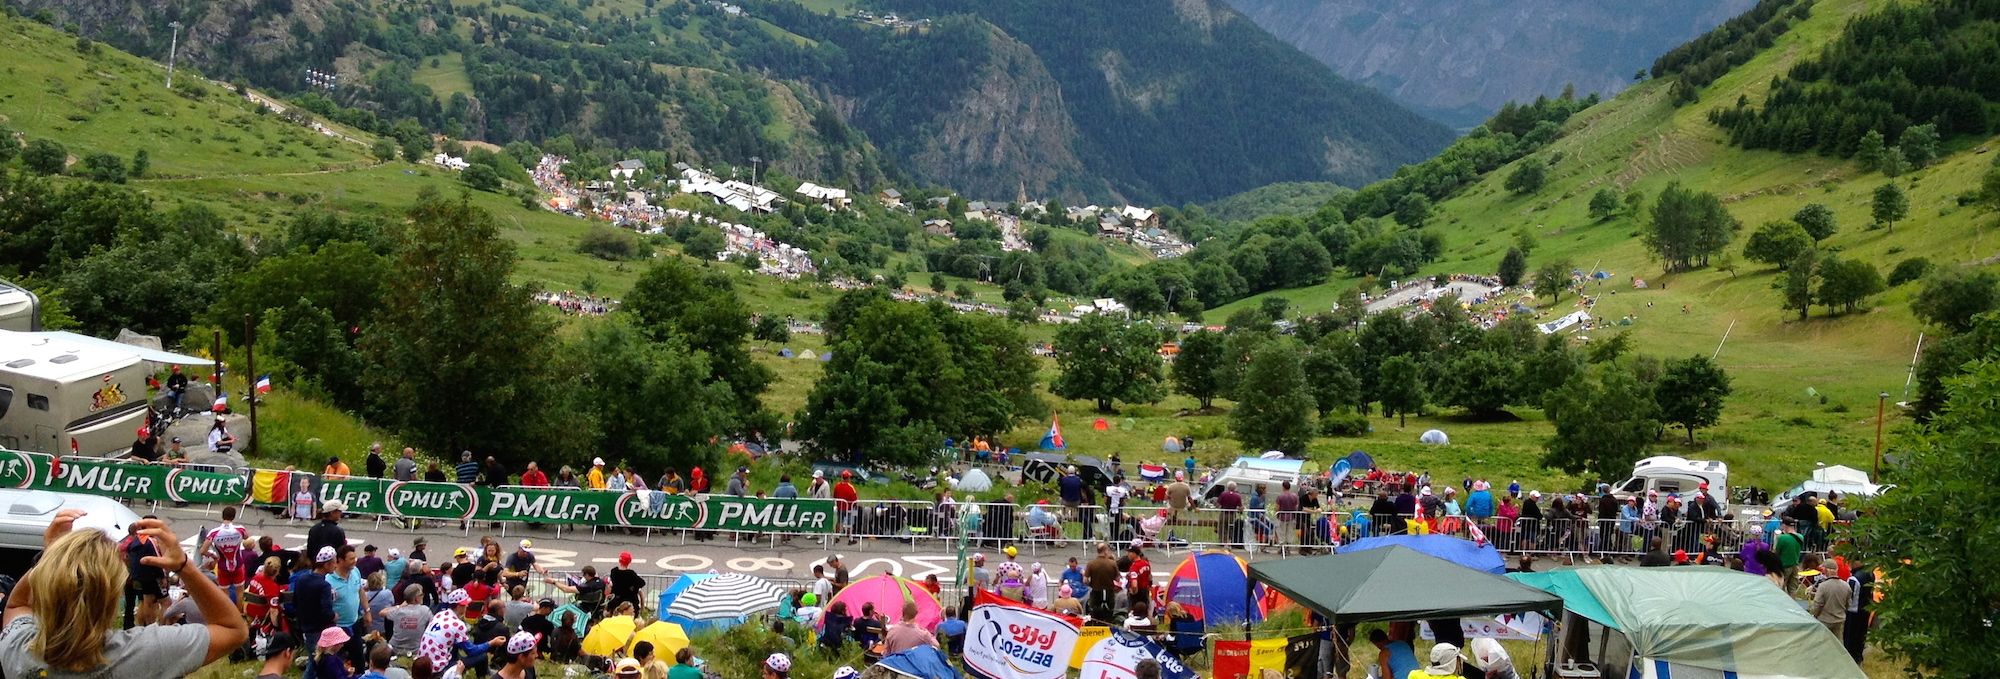 View-from-Alpe-dHuez-copy1